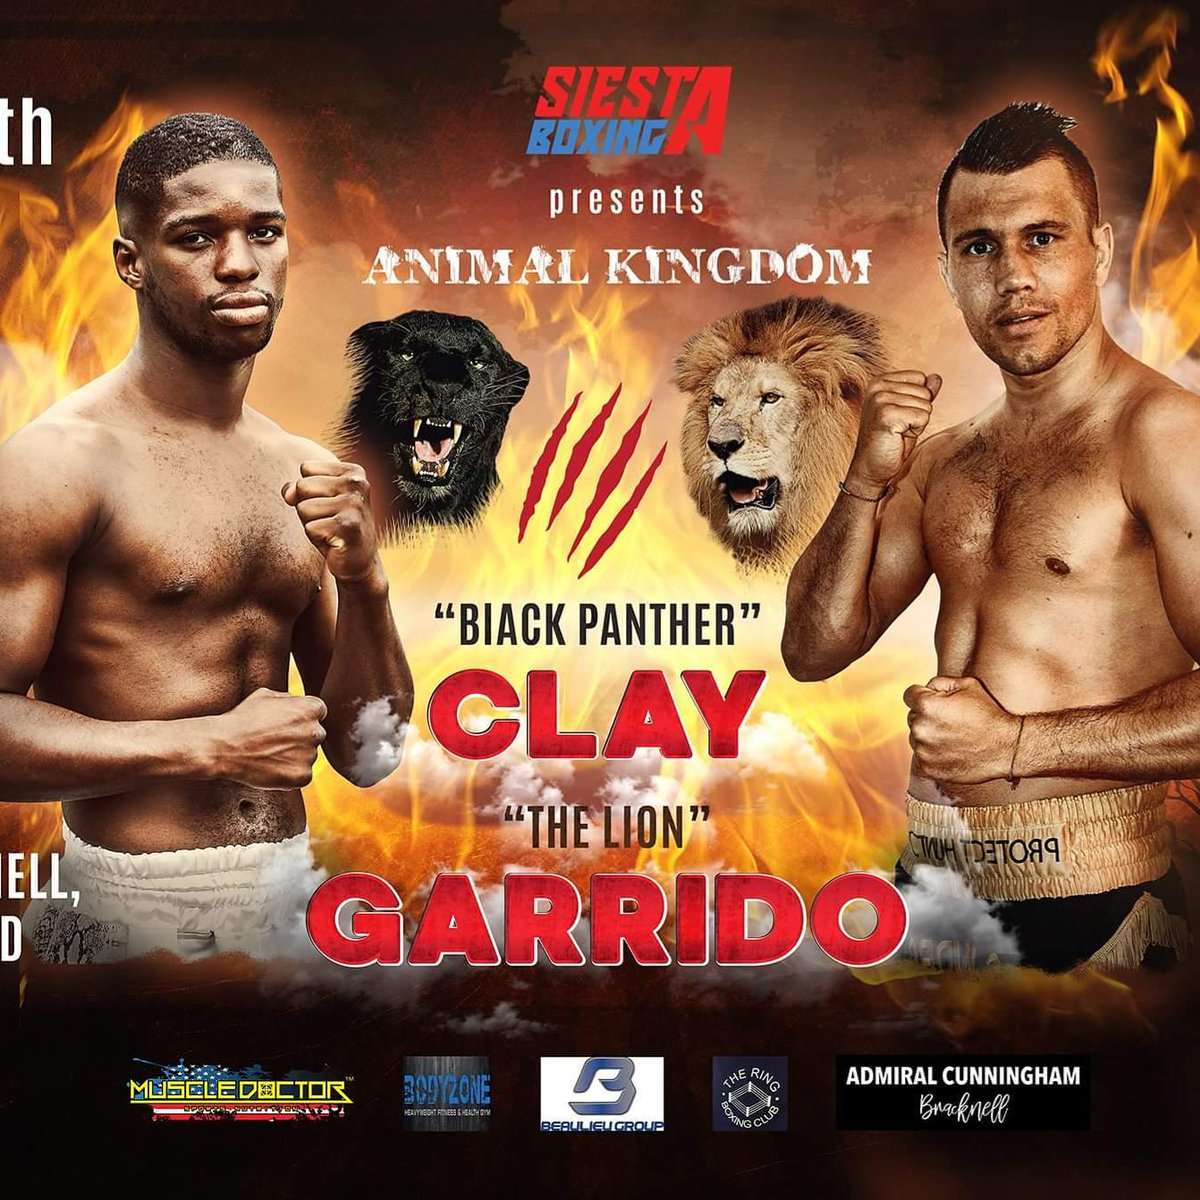 Less than 2 weeks until THE BATTLE OF BRACKNELL - The main event is a battle for the ANIMAL KINGDOM - The Black Panther @LutherClay95 vs Le Lion @renaldgarrido - Bracknell Leisure Centre JULY 8TH - Presented by @SiestaBoxing and @al_siesta<br>http://pic.twitter.com/3v2acBPOpx